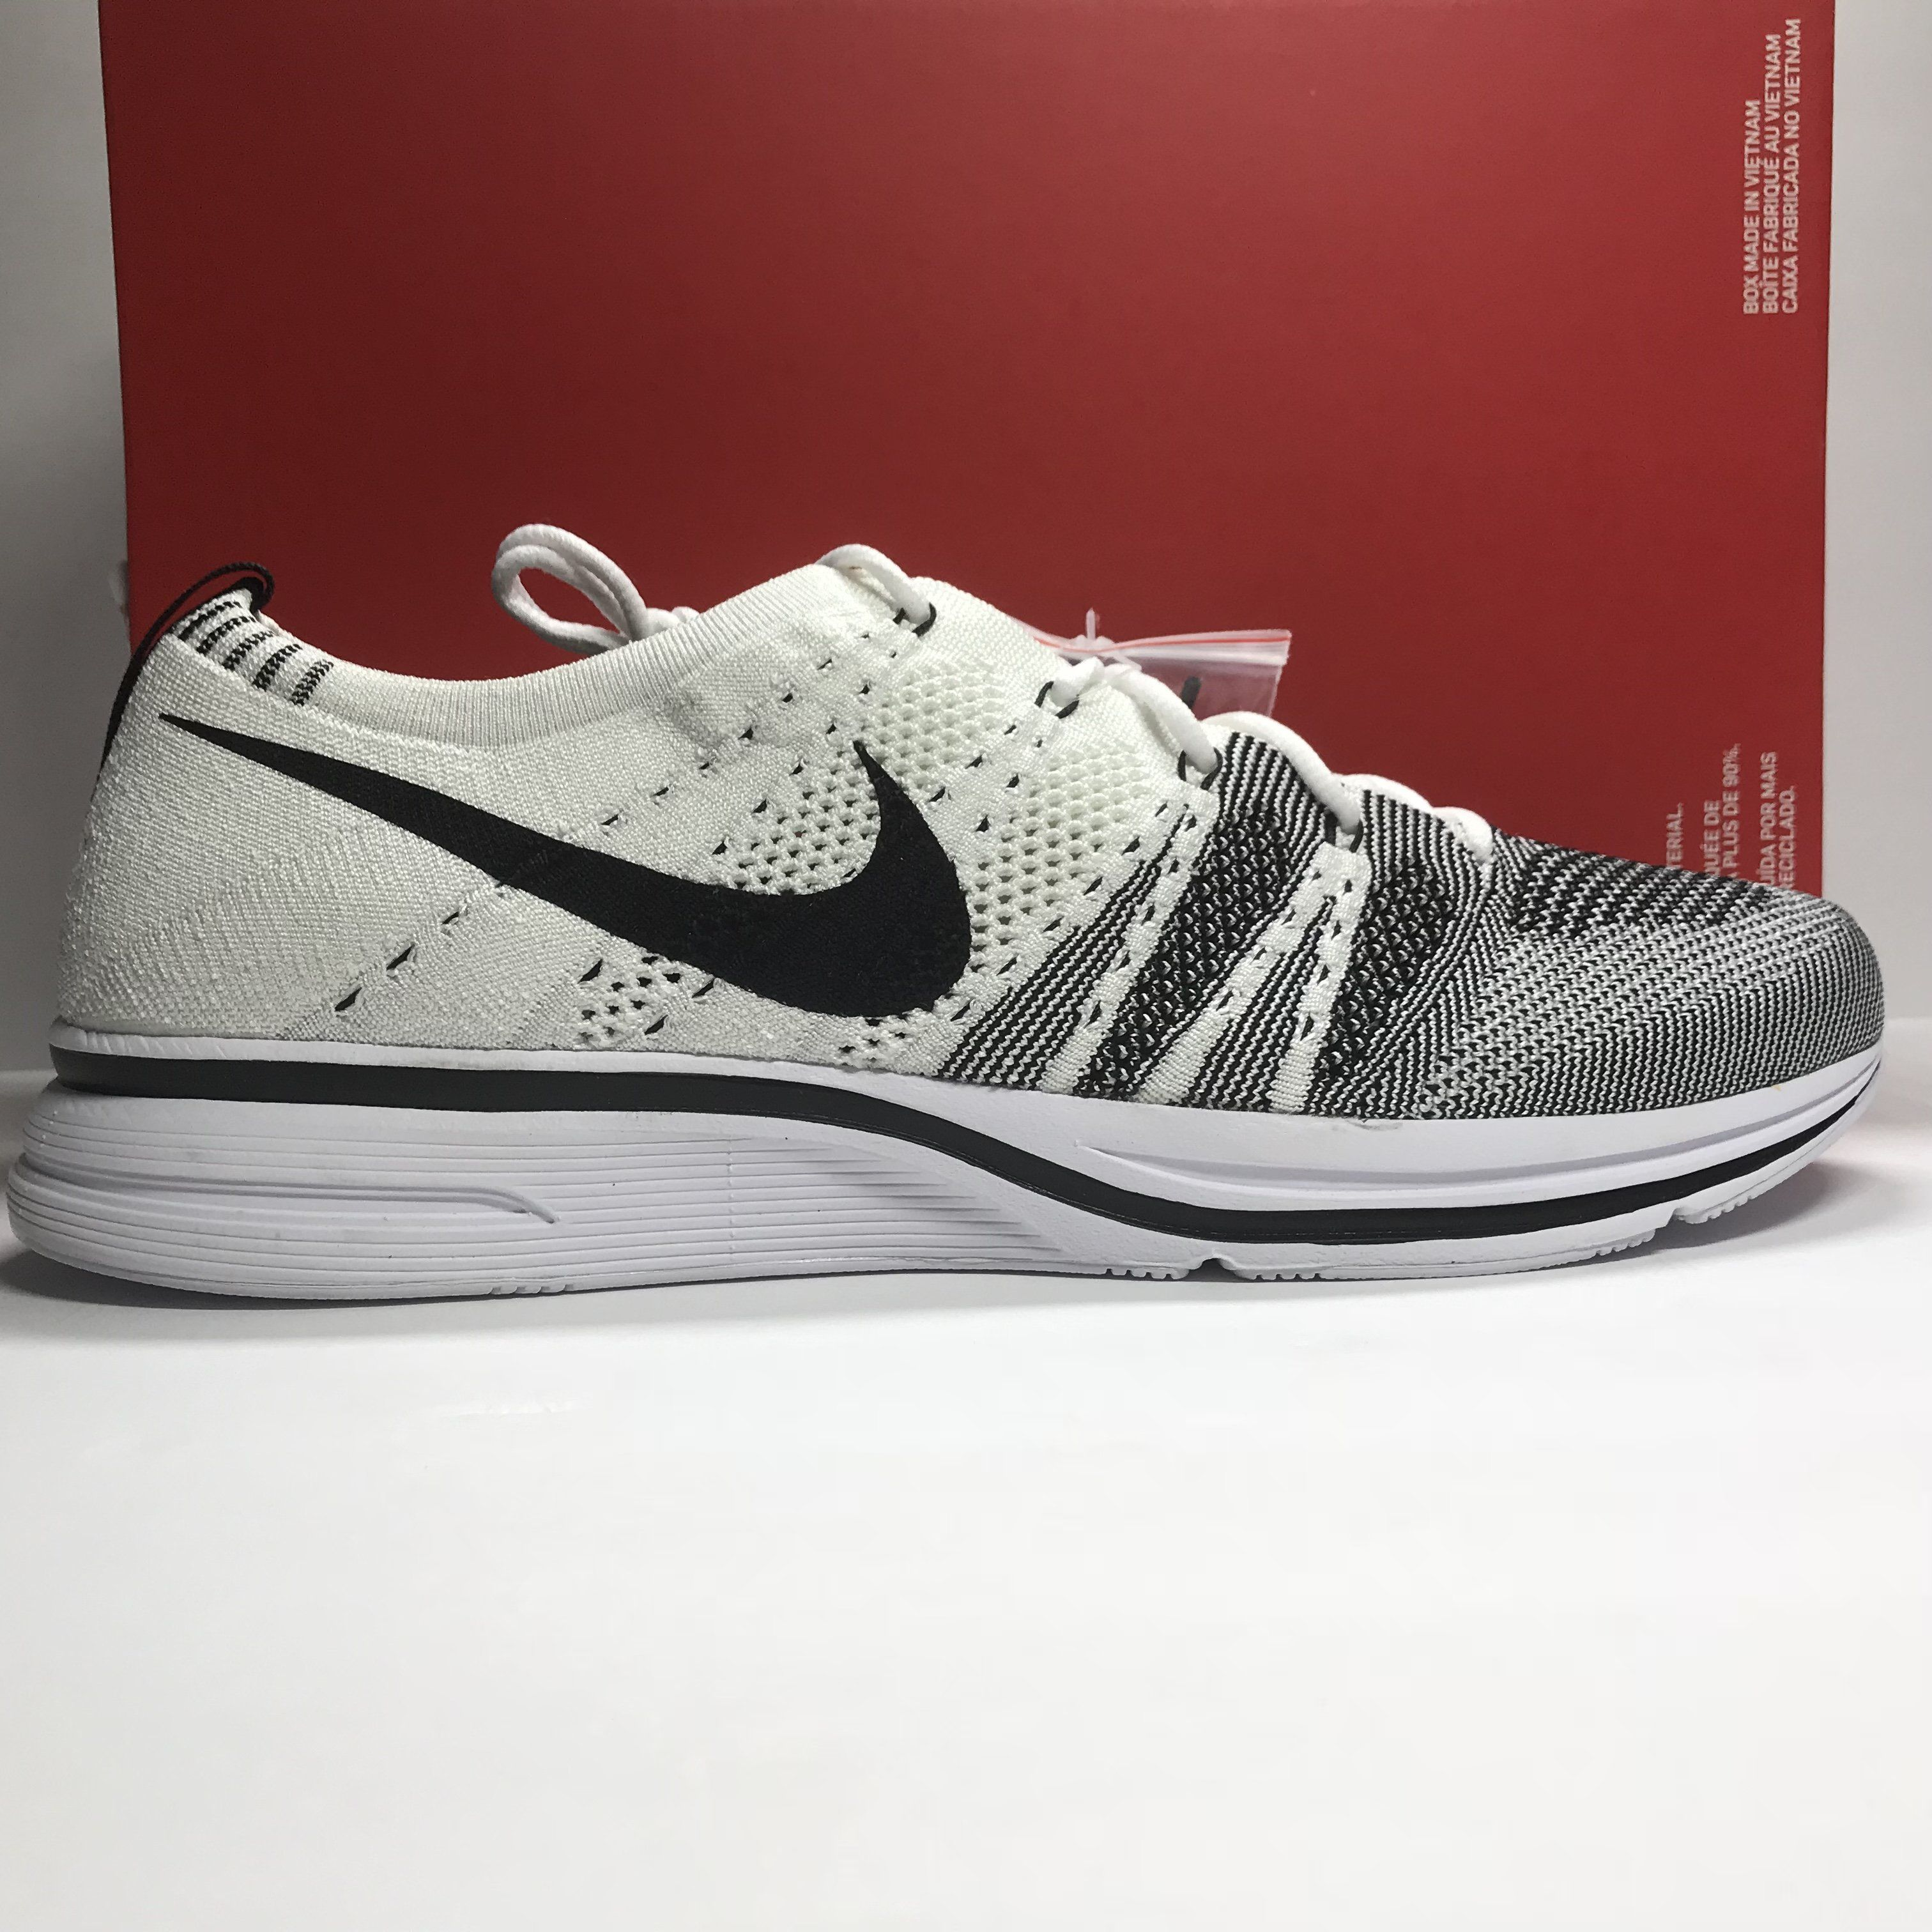 4c556a096ff7e DS Nike Flyknit Trainer White Black Size 11.5